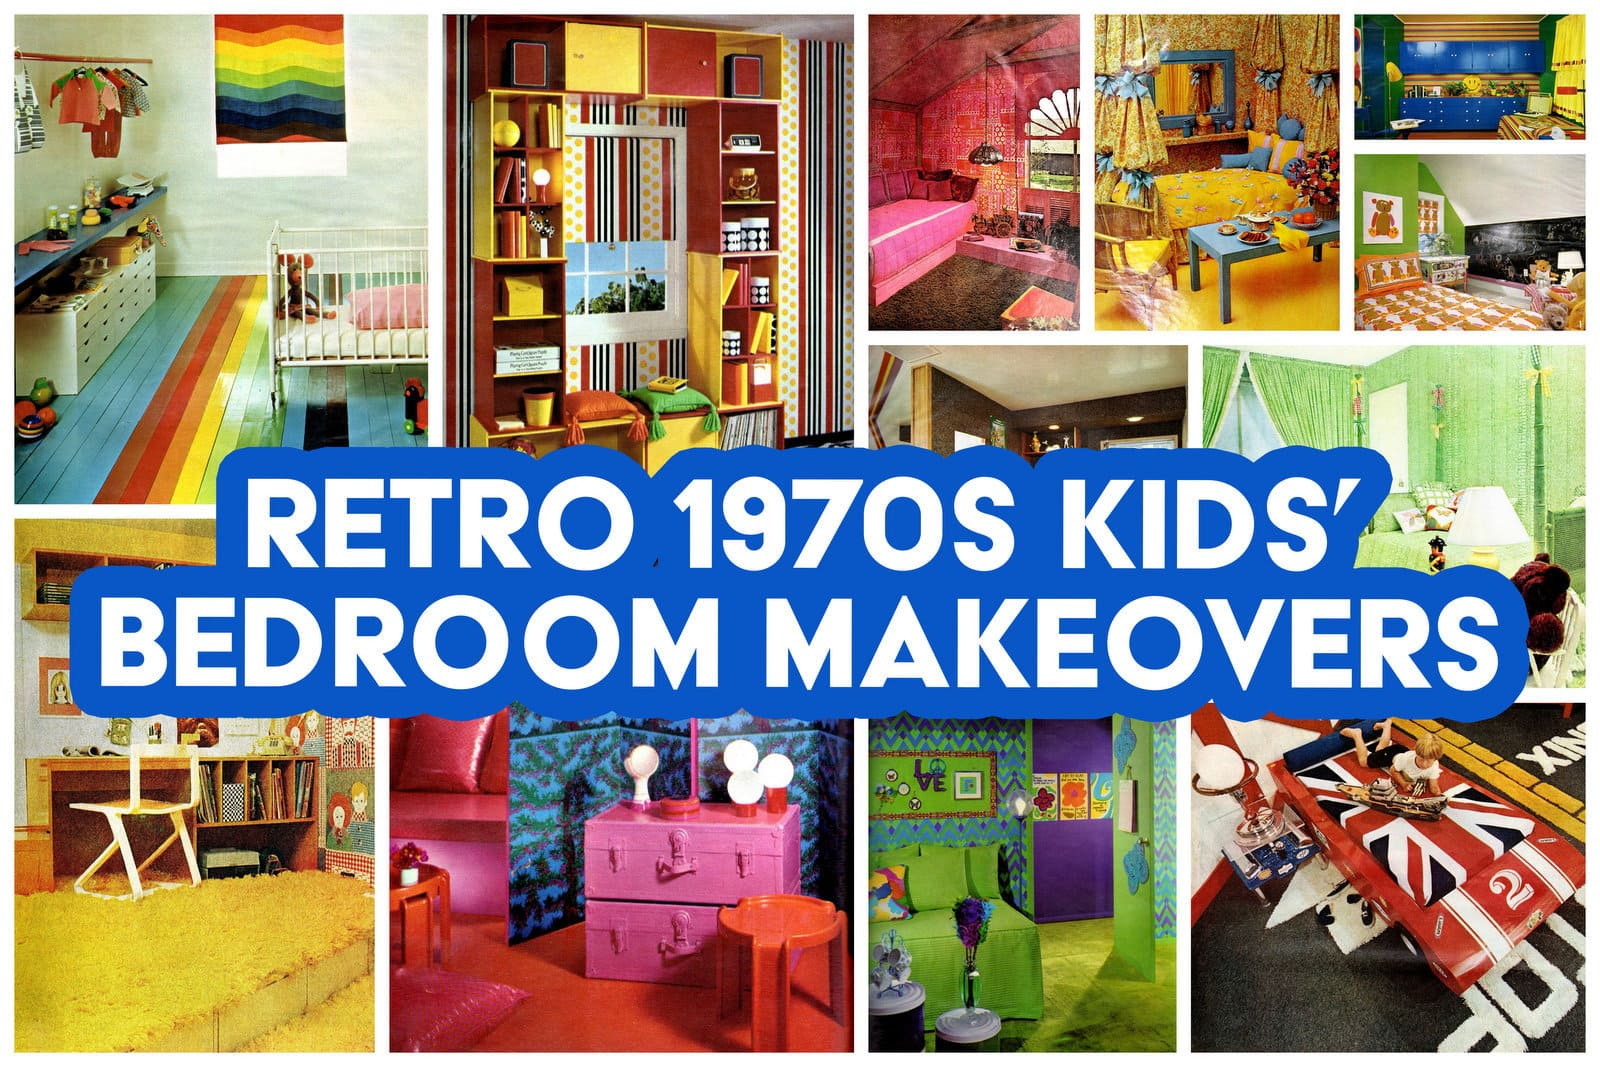 Retro kids' bedroom makeovers - Ideas and inspiration from the '70s